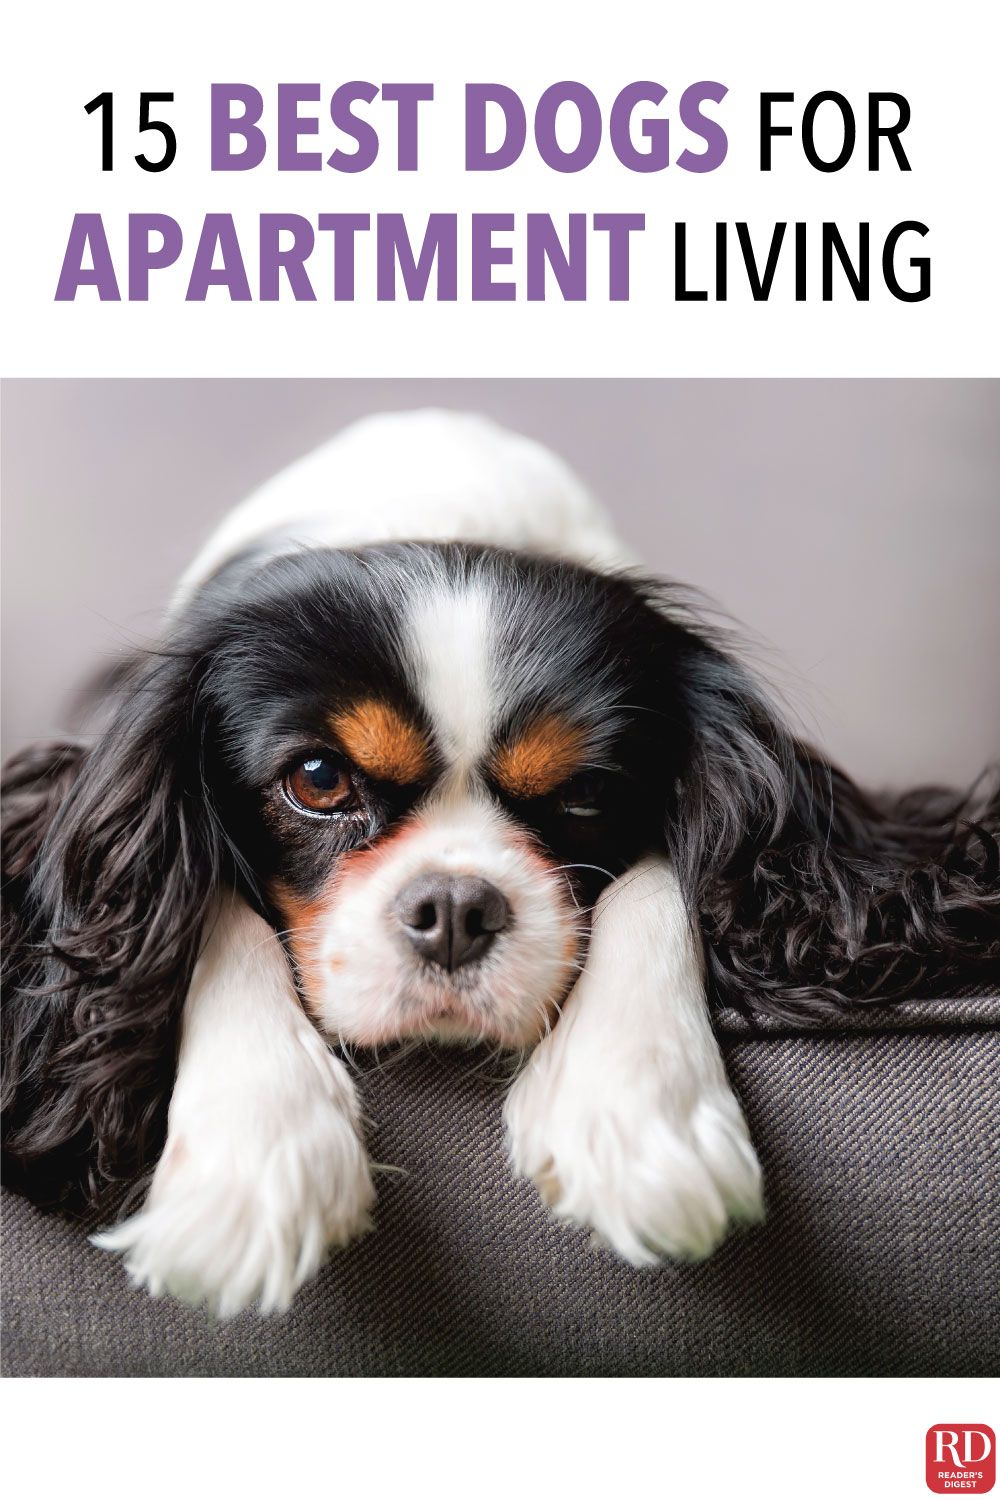 The 15 Best Dogs For Apartment Living If You Re Looking To Adopt A Furry Friend And Want To Make Sure They Re On Apartment Dogs Best Apartment Dogs Best Dogs